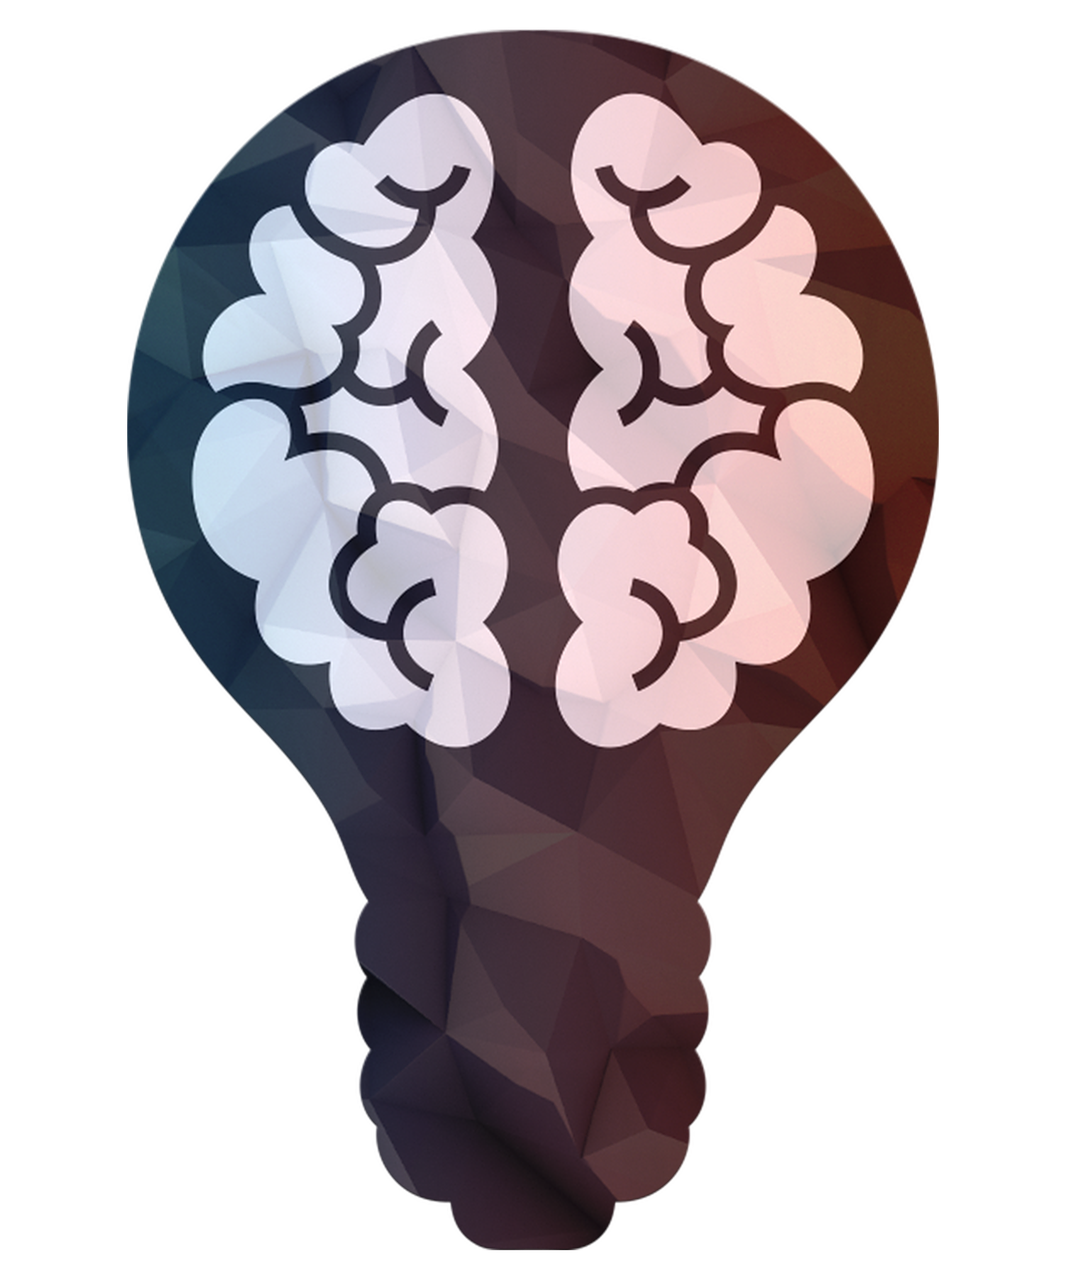 A decorative picture of a brain to answer Why don't clocks appear in dreams?